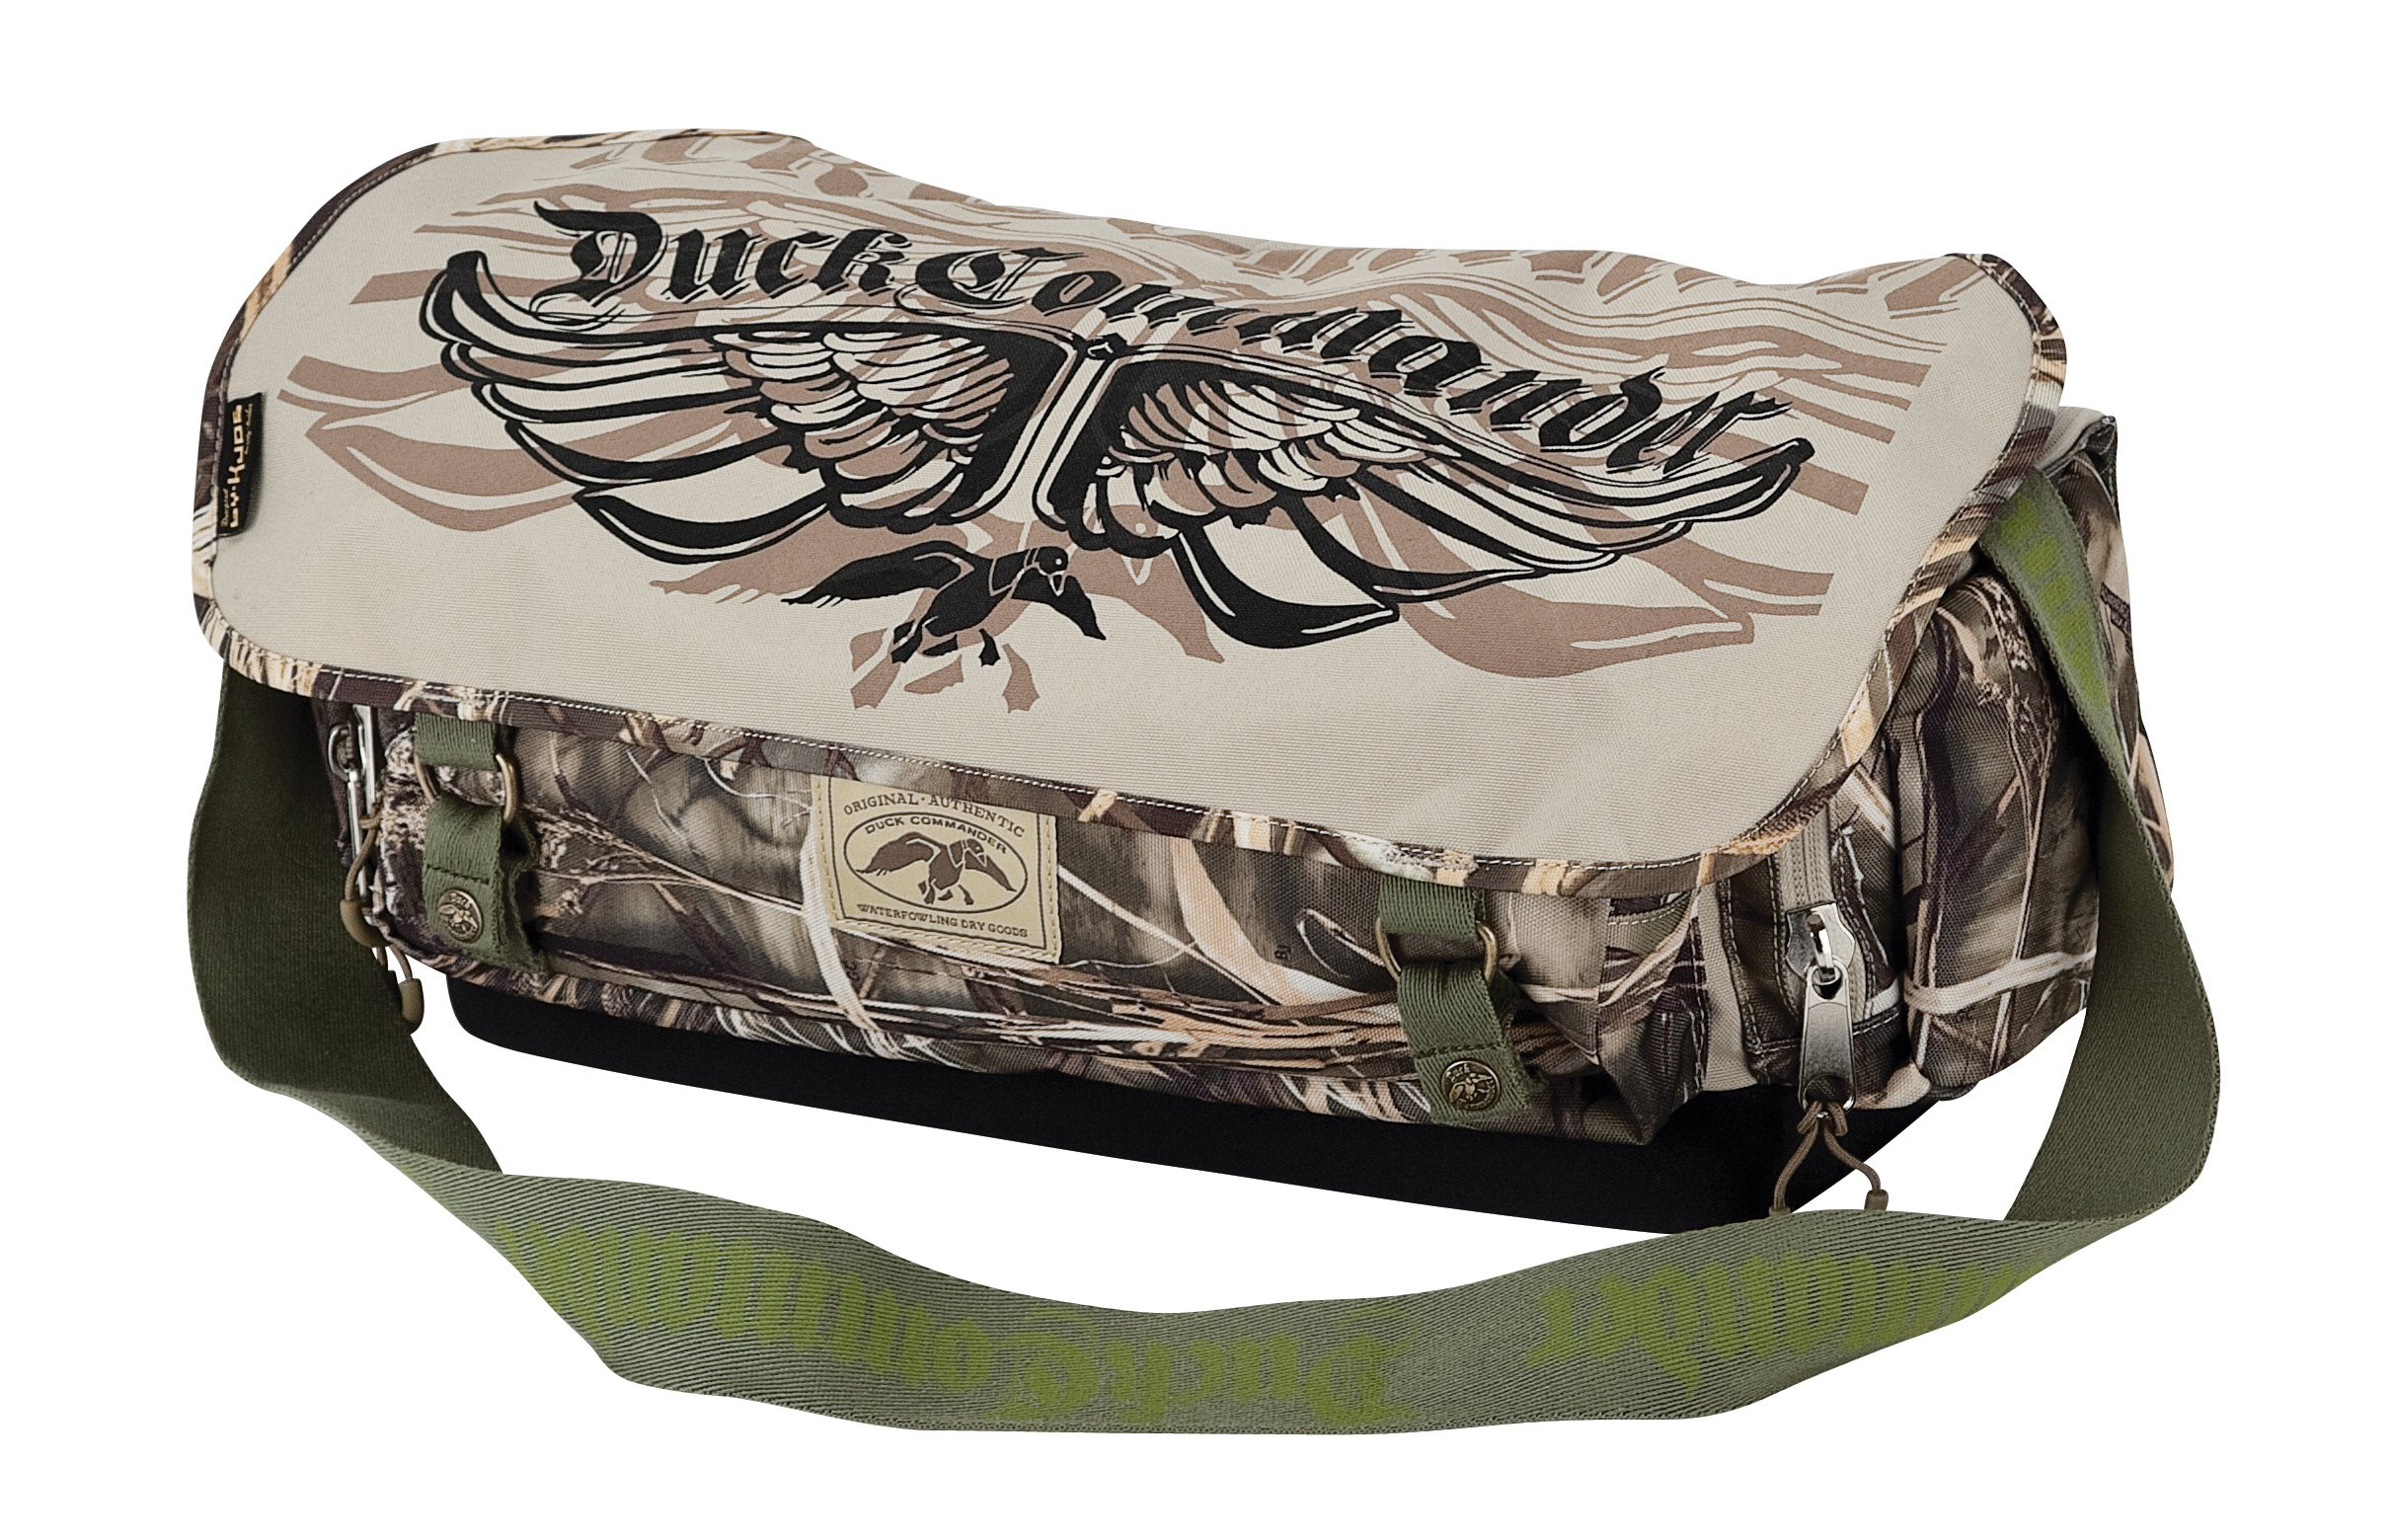 DUCK COMMANDER Authentic Blind Bag, Camo